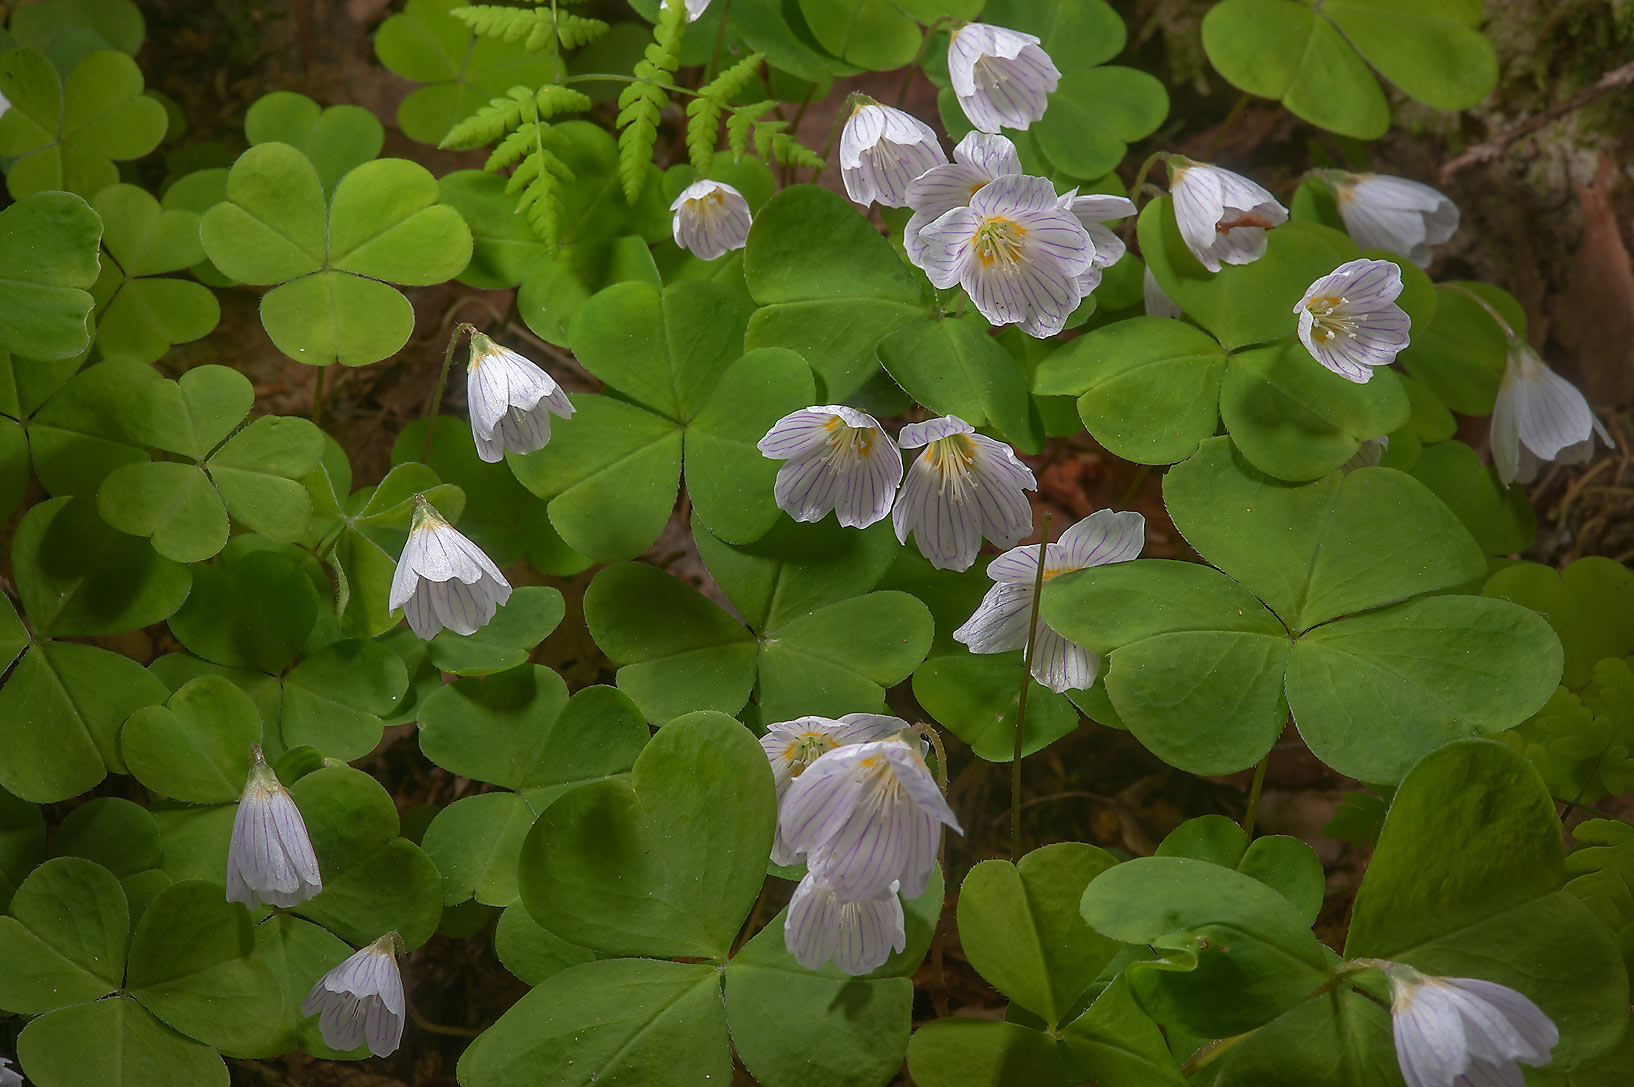 Flowers of wood sorrel (Oxalis acetosella...suburb of St.Petersburg, Russia